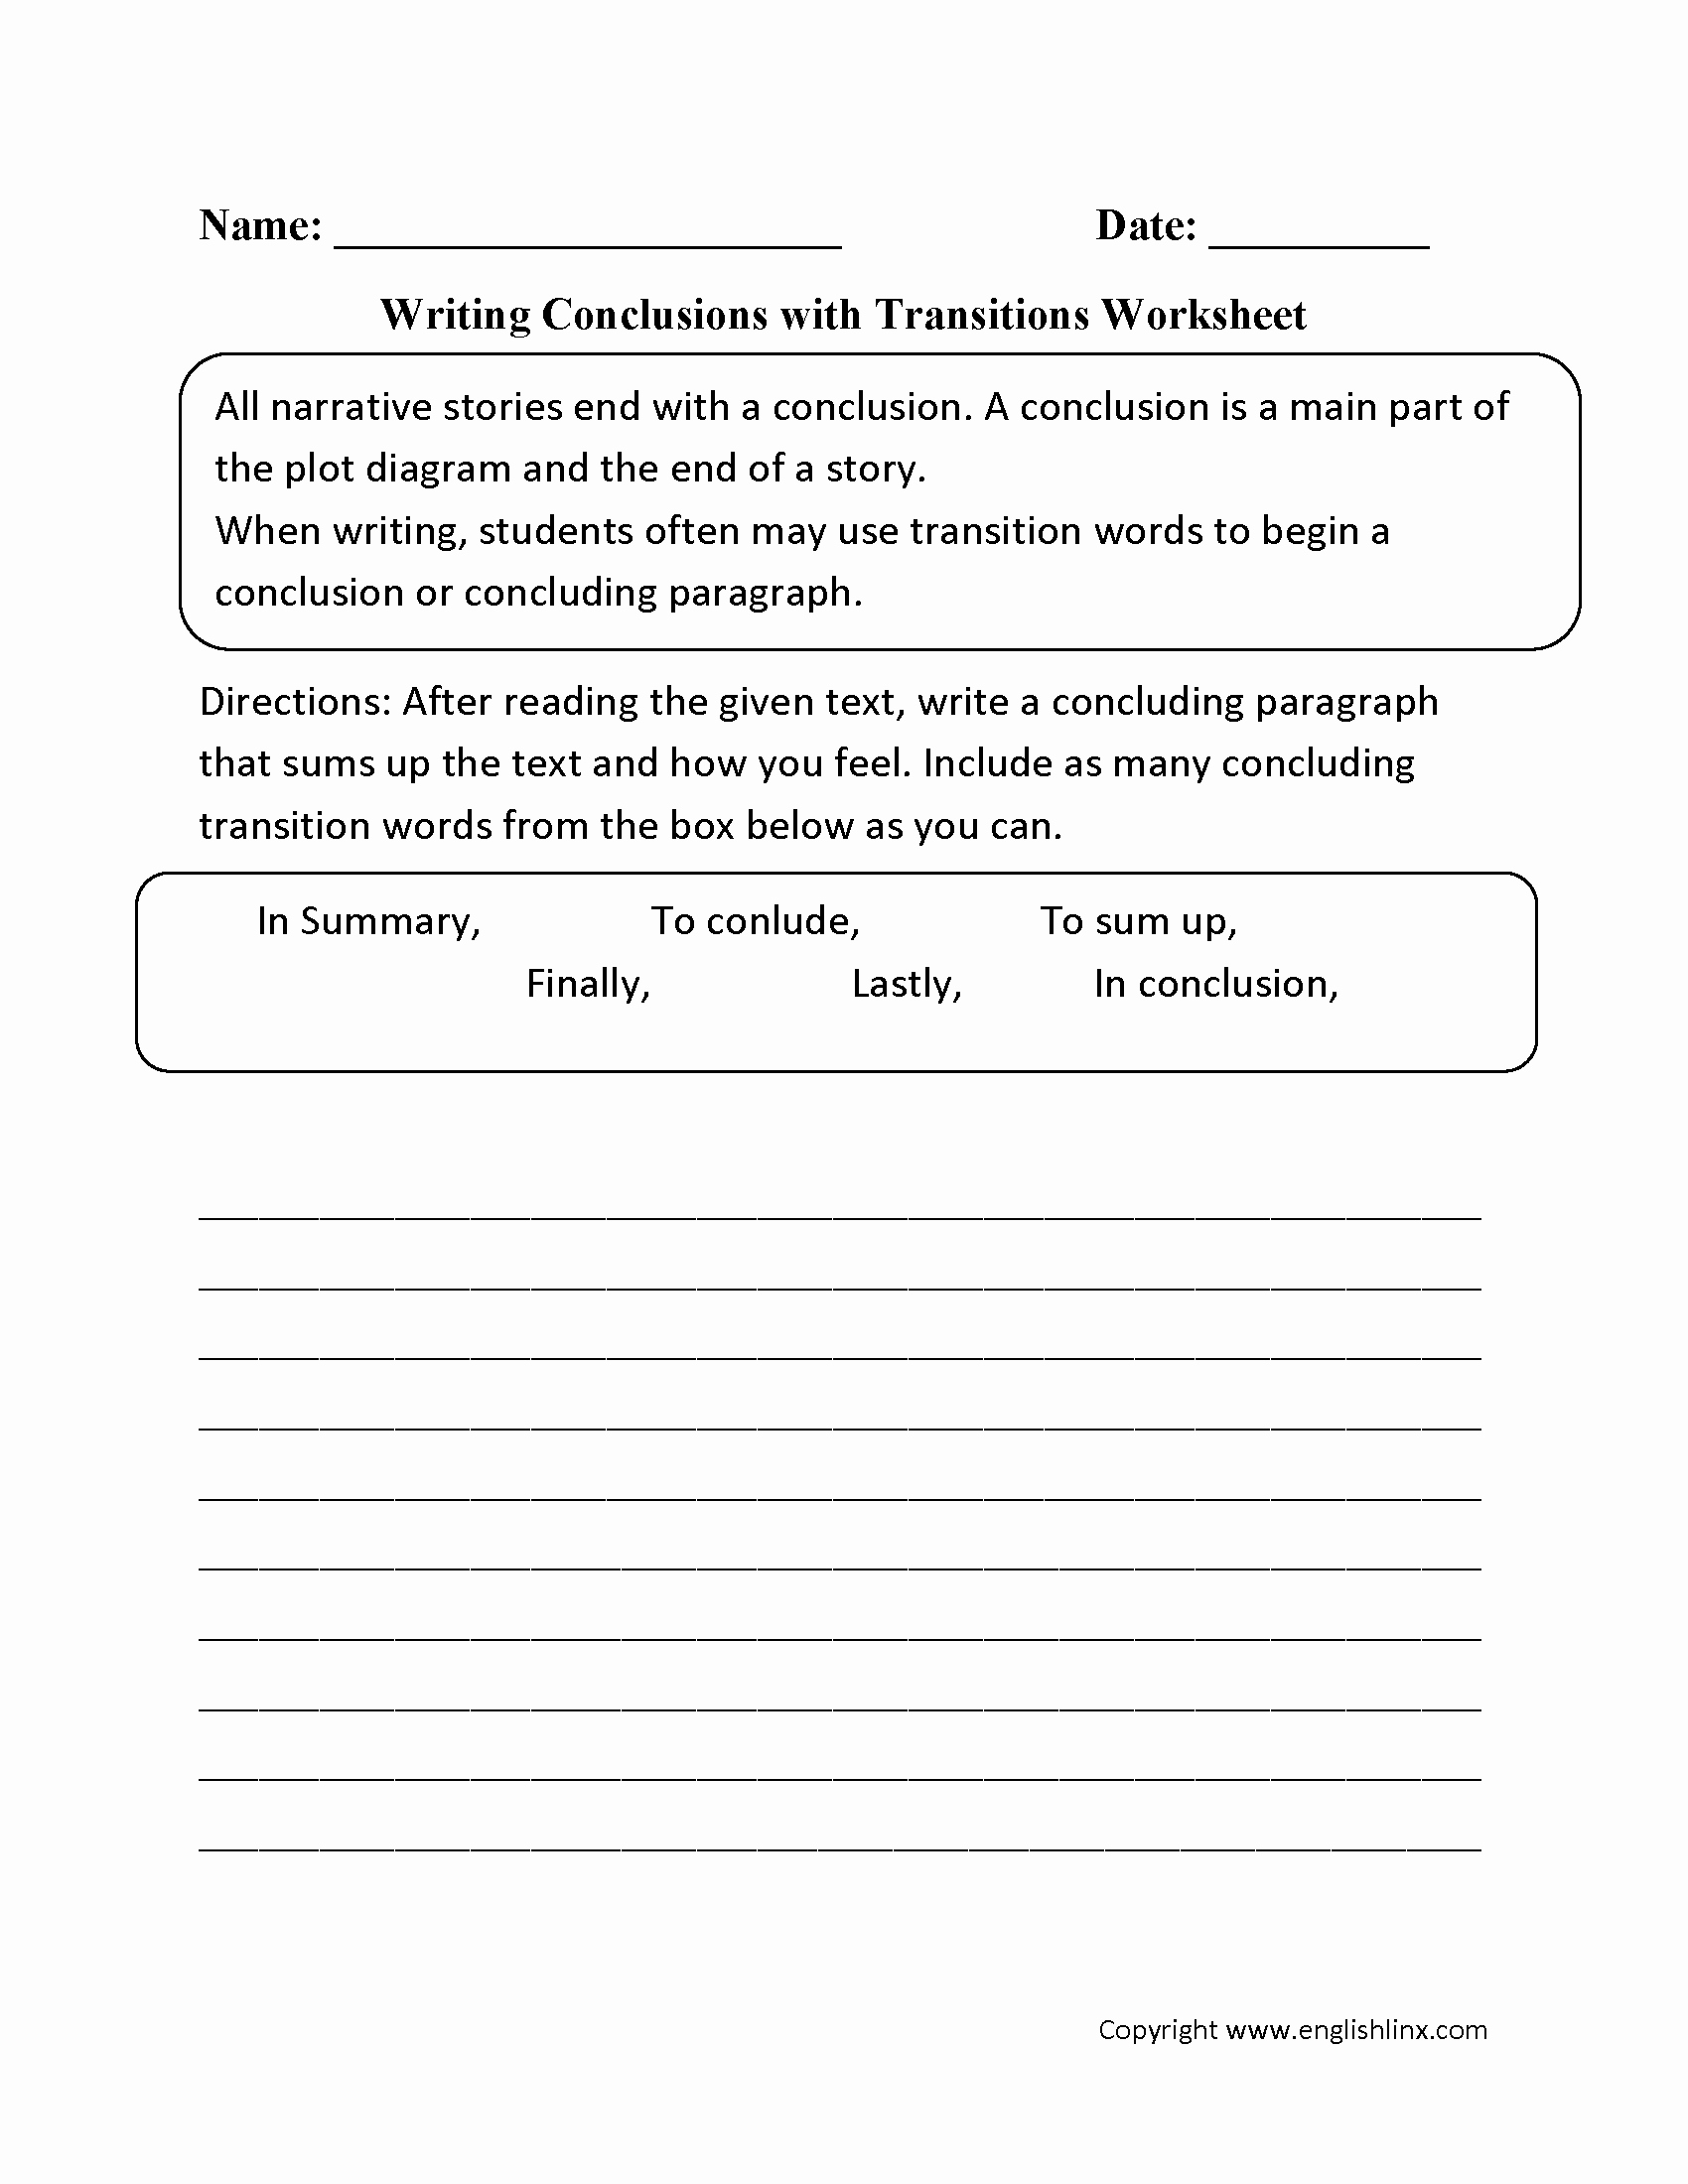 Making Conclusions Geometry Worksheet Answers Awesome